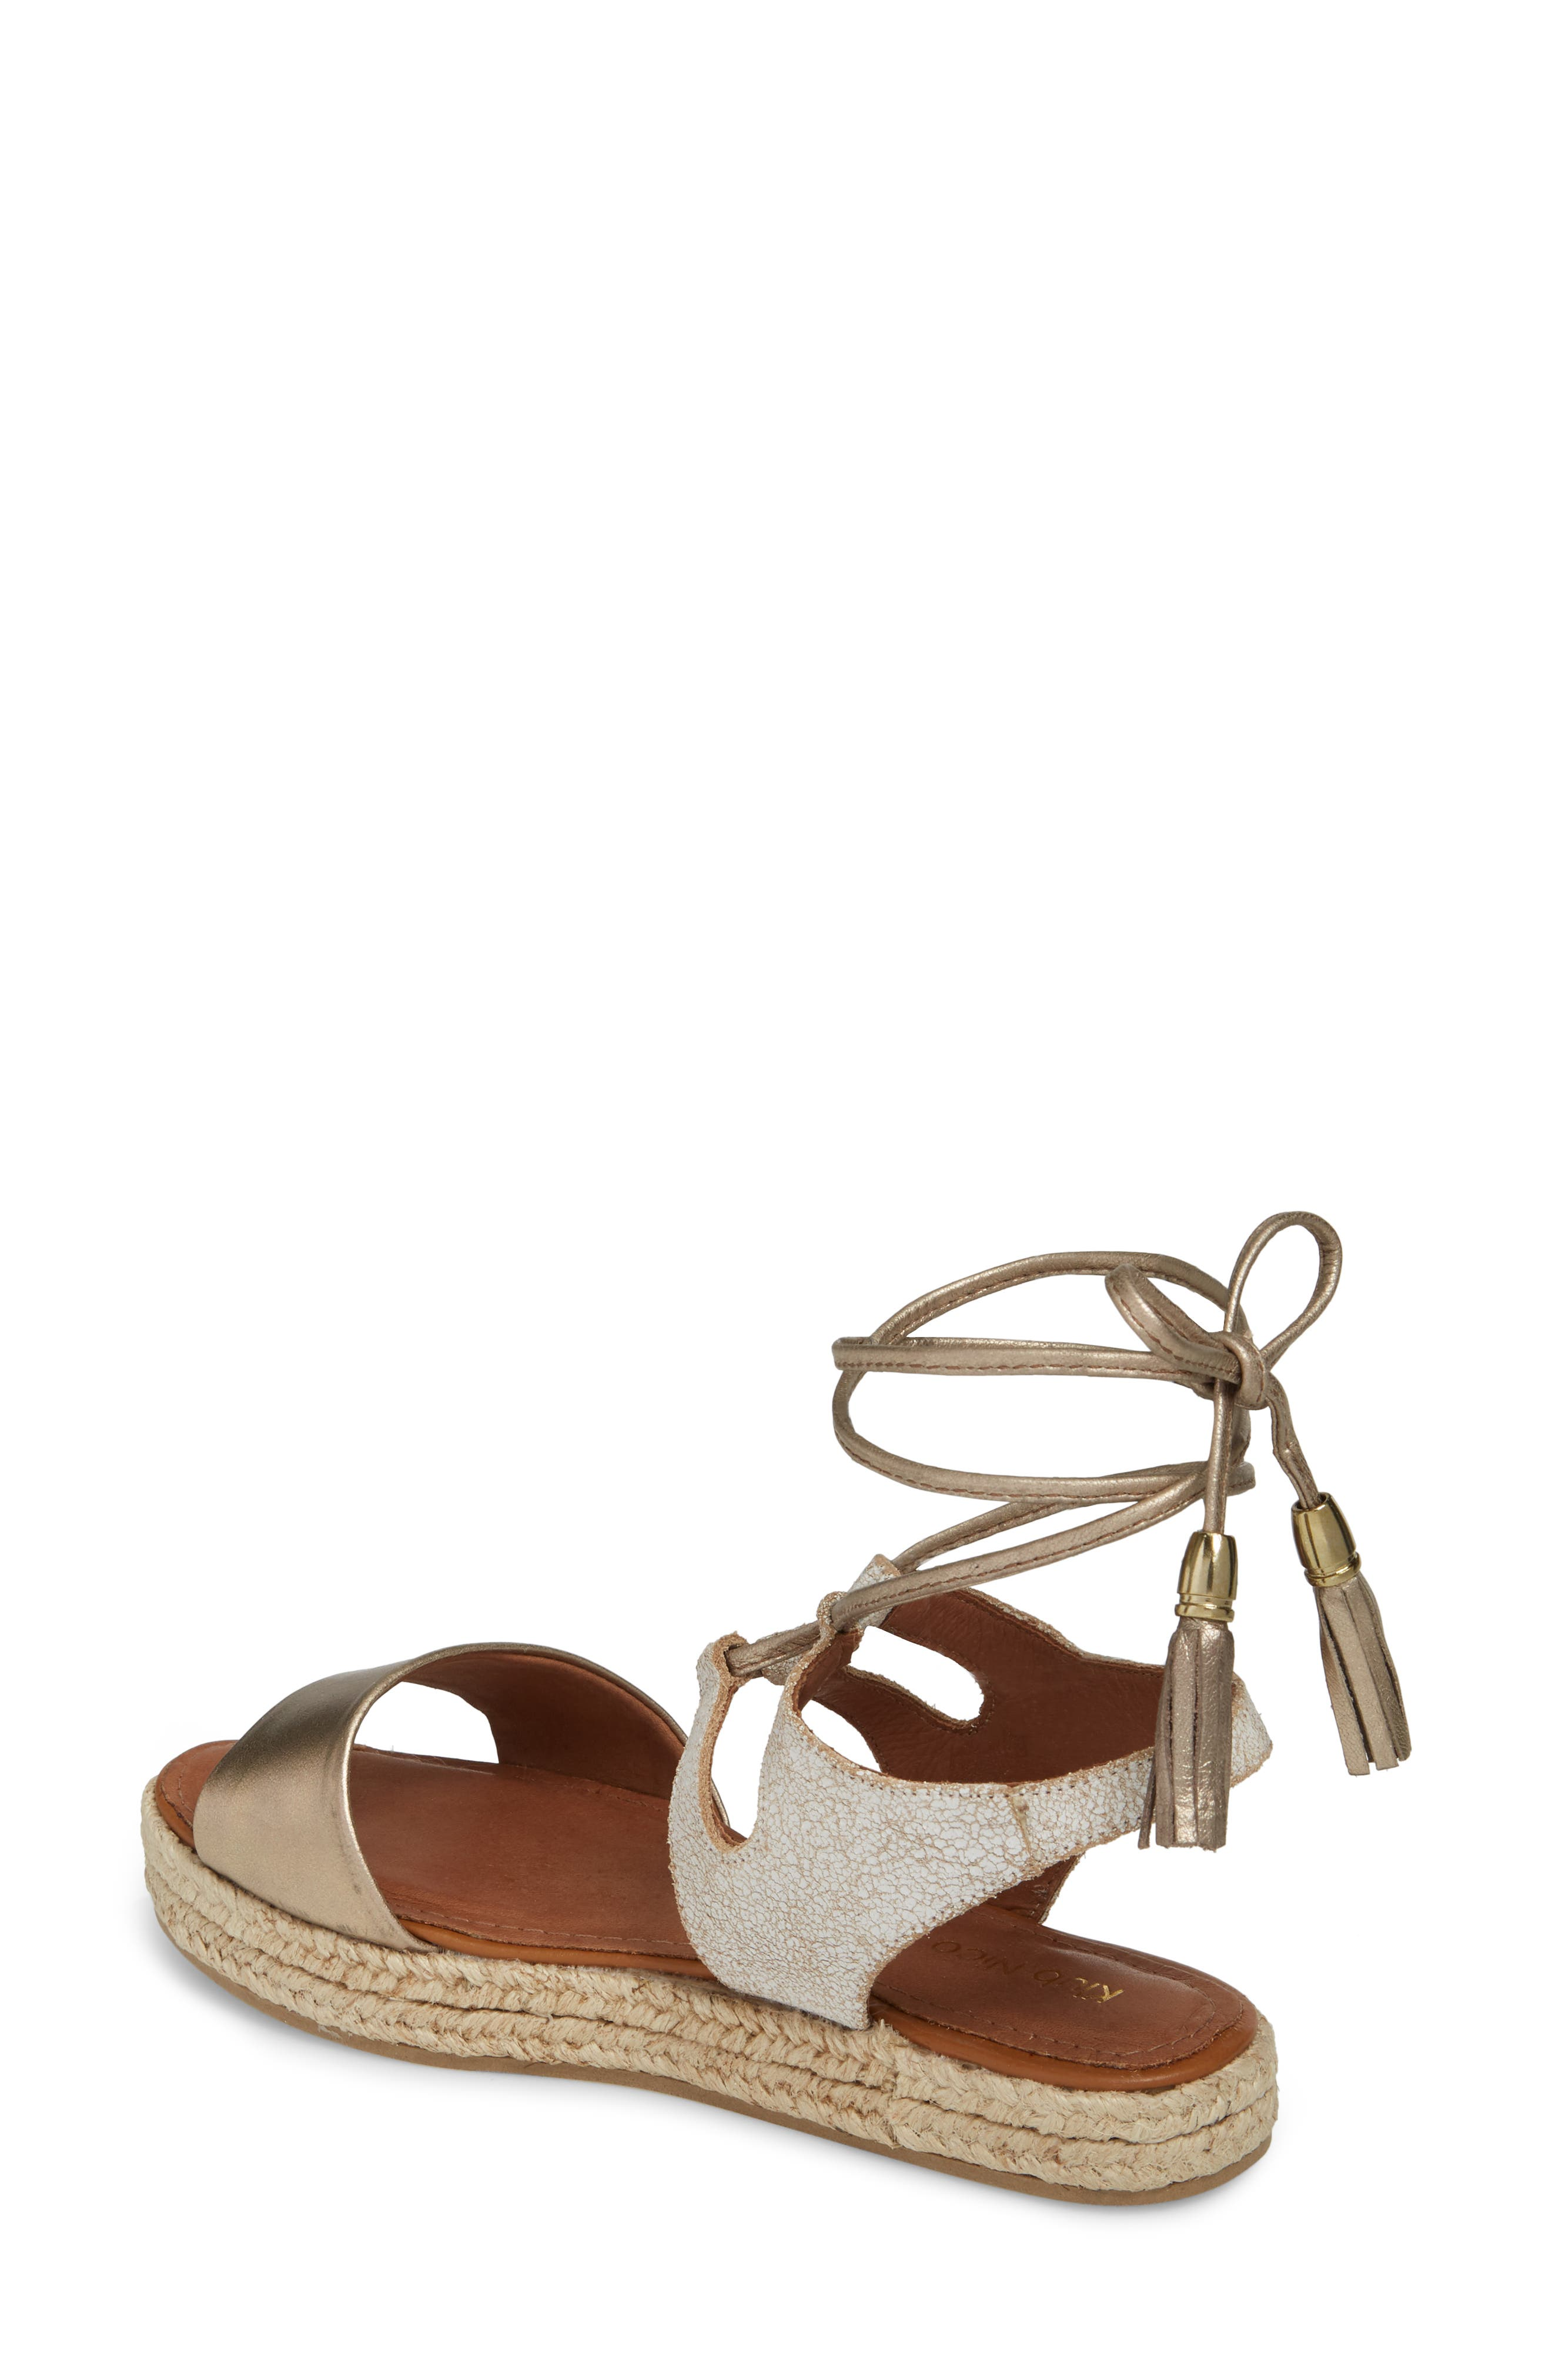 Erika Espadrille Sandal,                             Alternate thumbnail 2, color,                             042